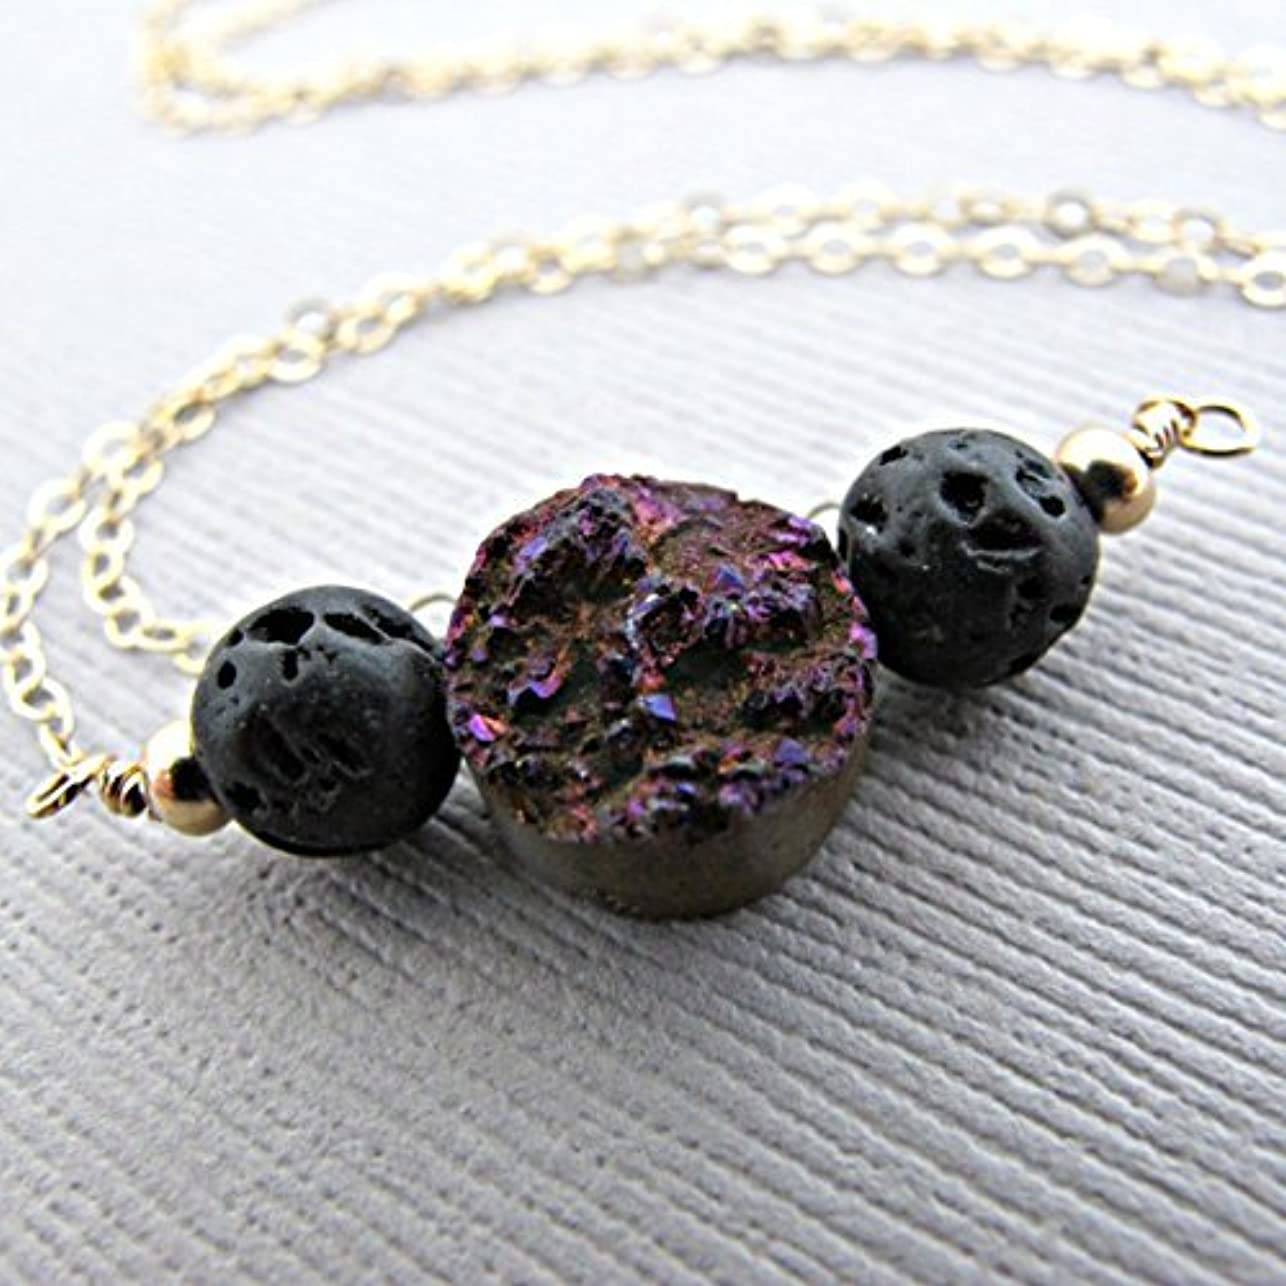 落ち着いた電話する教義Purple Druzy Lava Pendant Essential Oil Necklace Diffuser Aromatherapy - Simple Minimalist Lava Bead Diffuser...